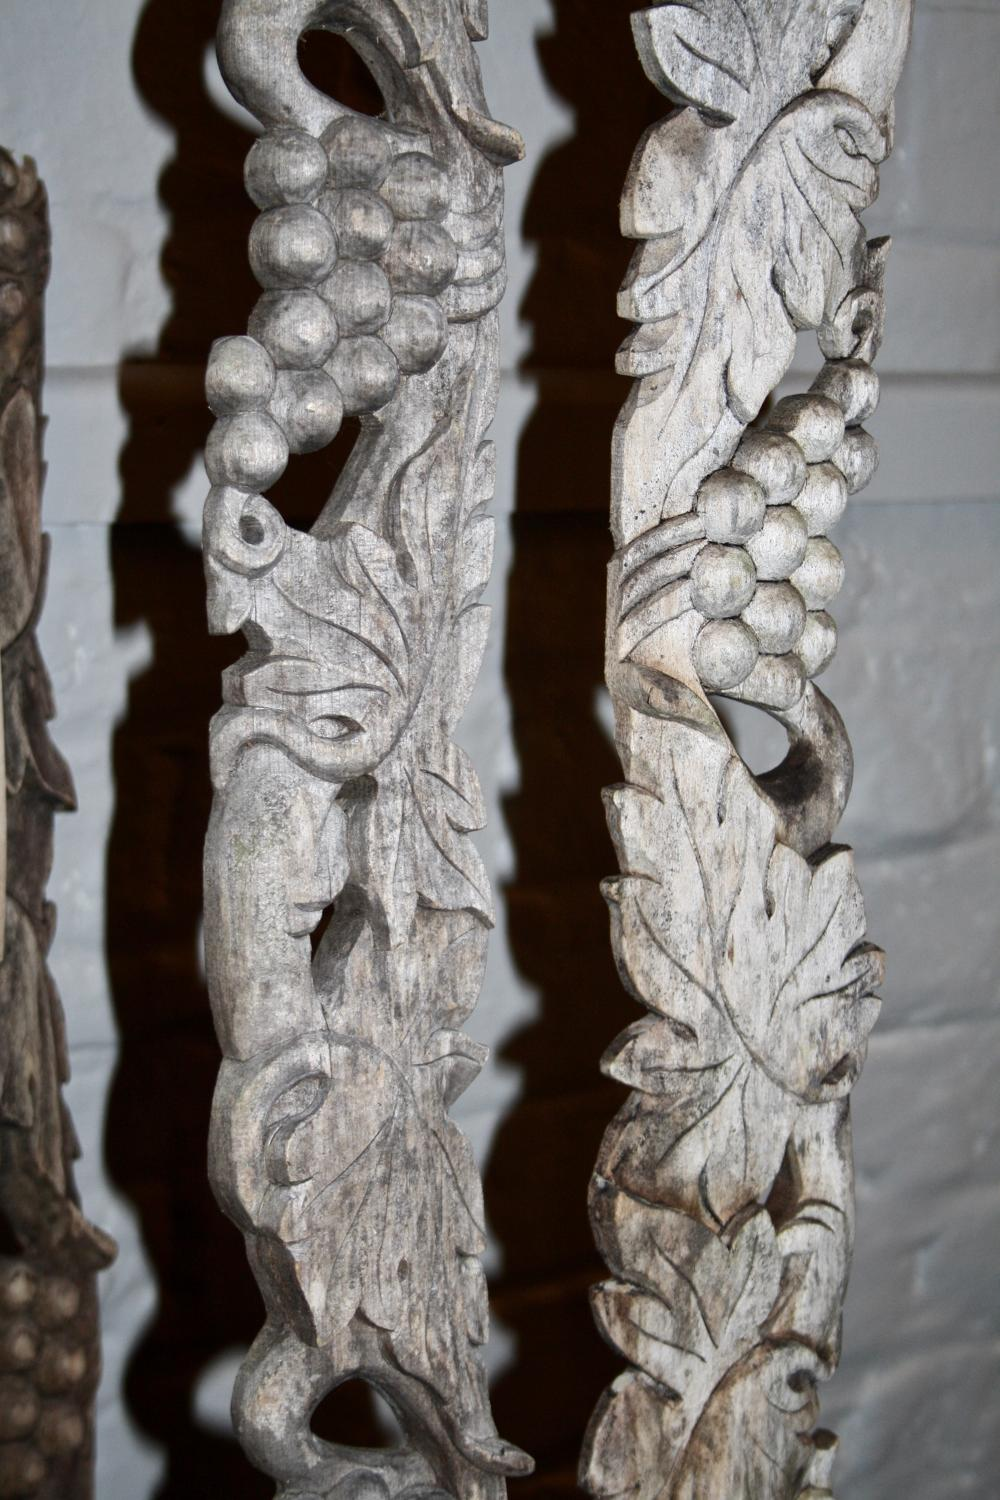 Wooden carvings - vines and grapes